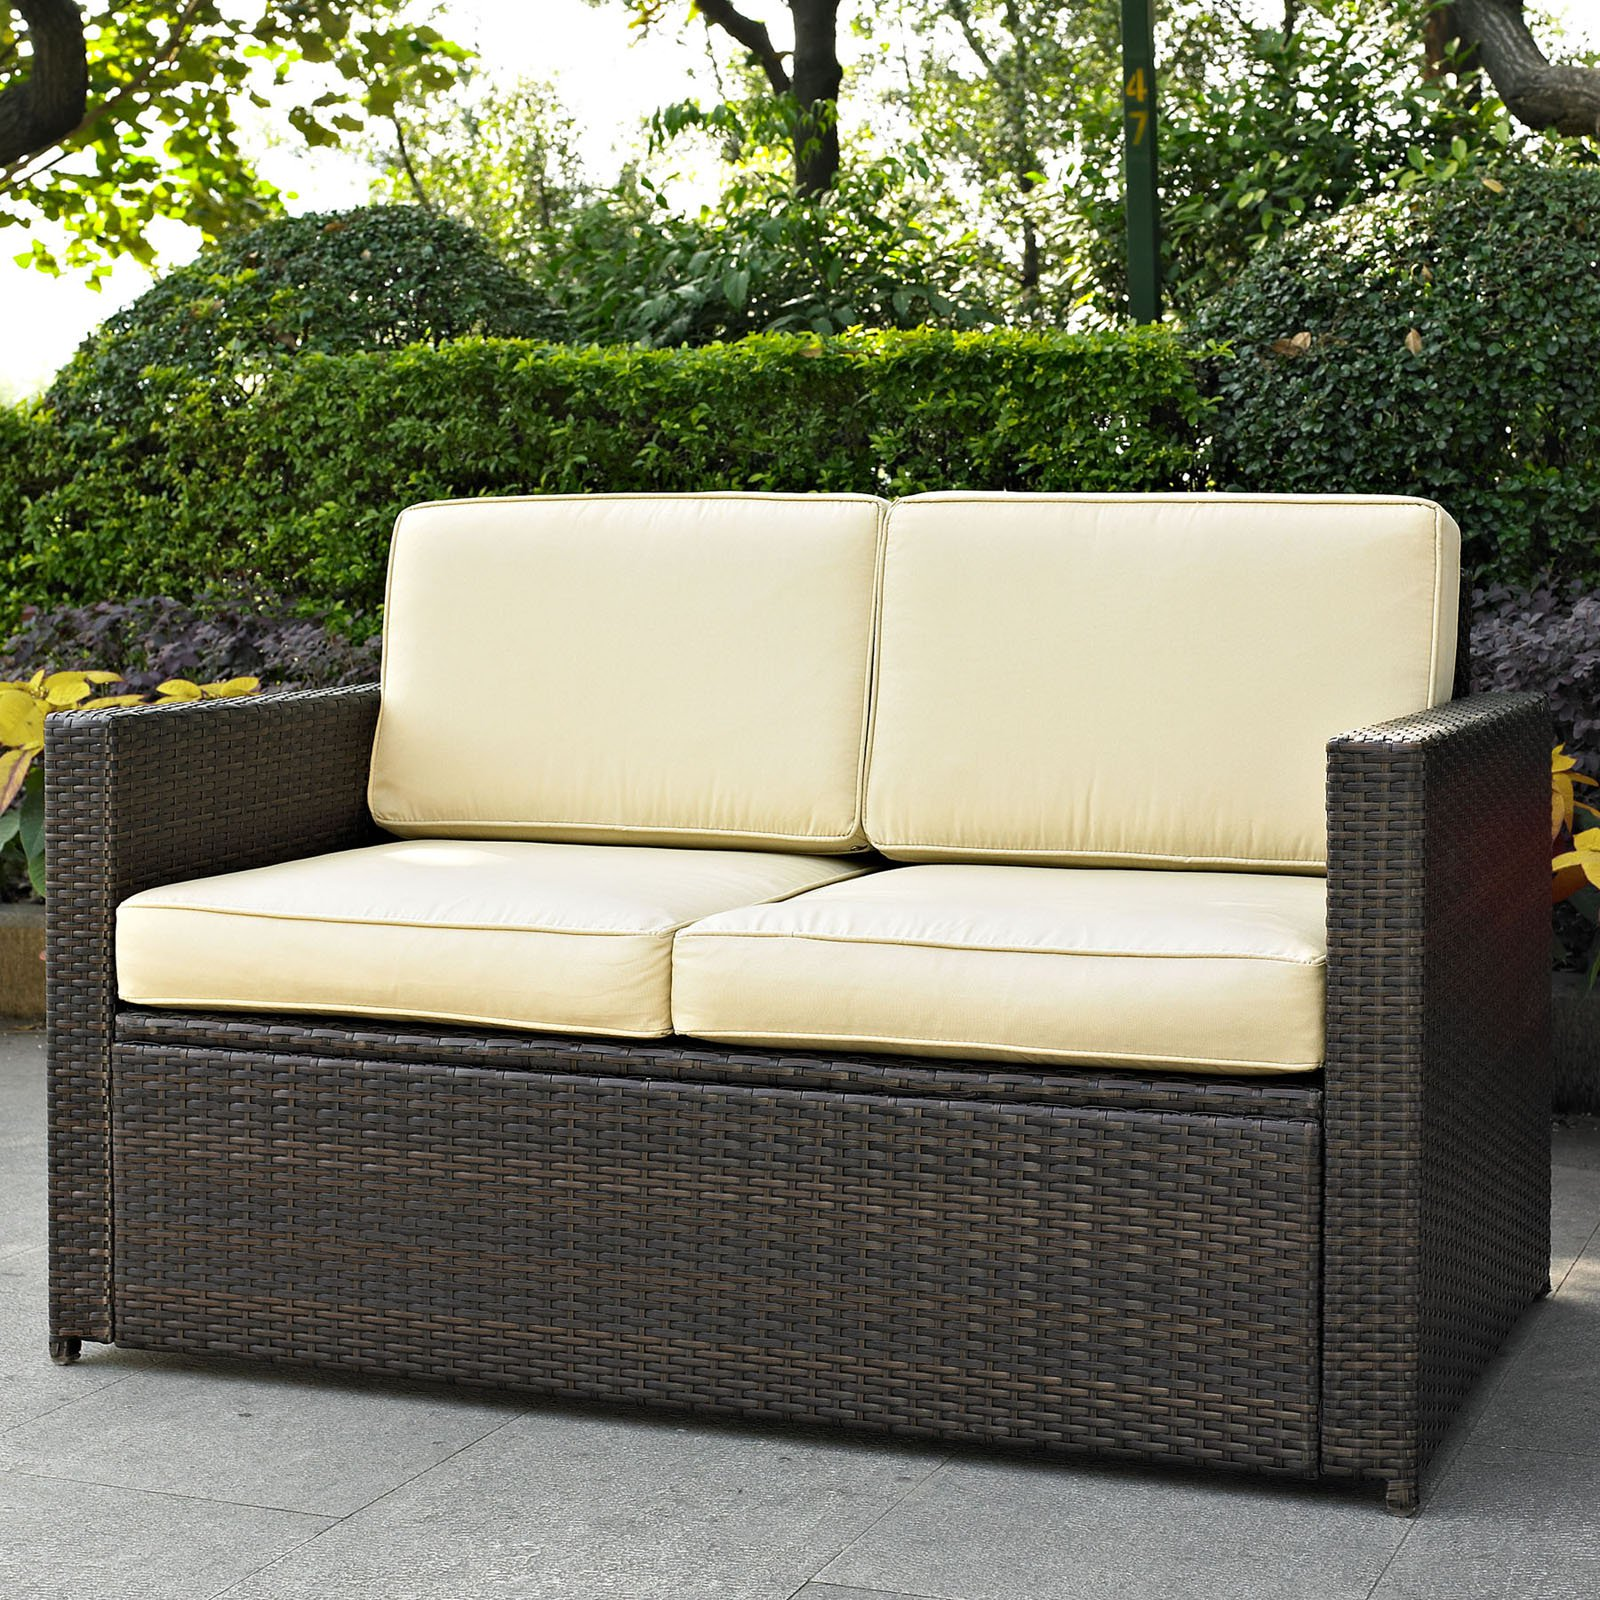 best inspirational furniture of swing cushions for loveseat patio outdoor